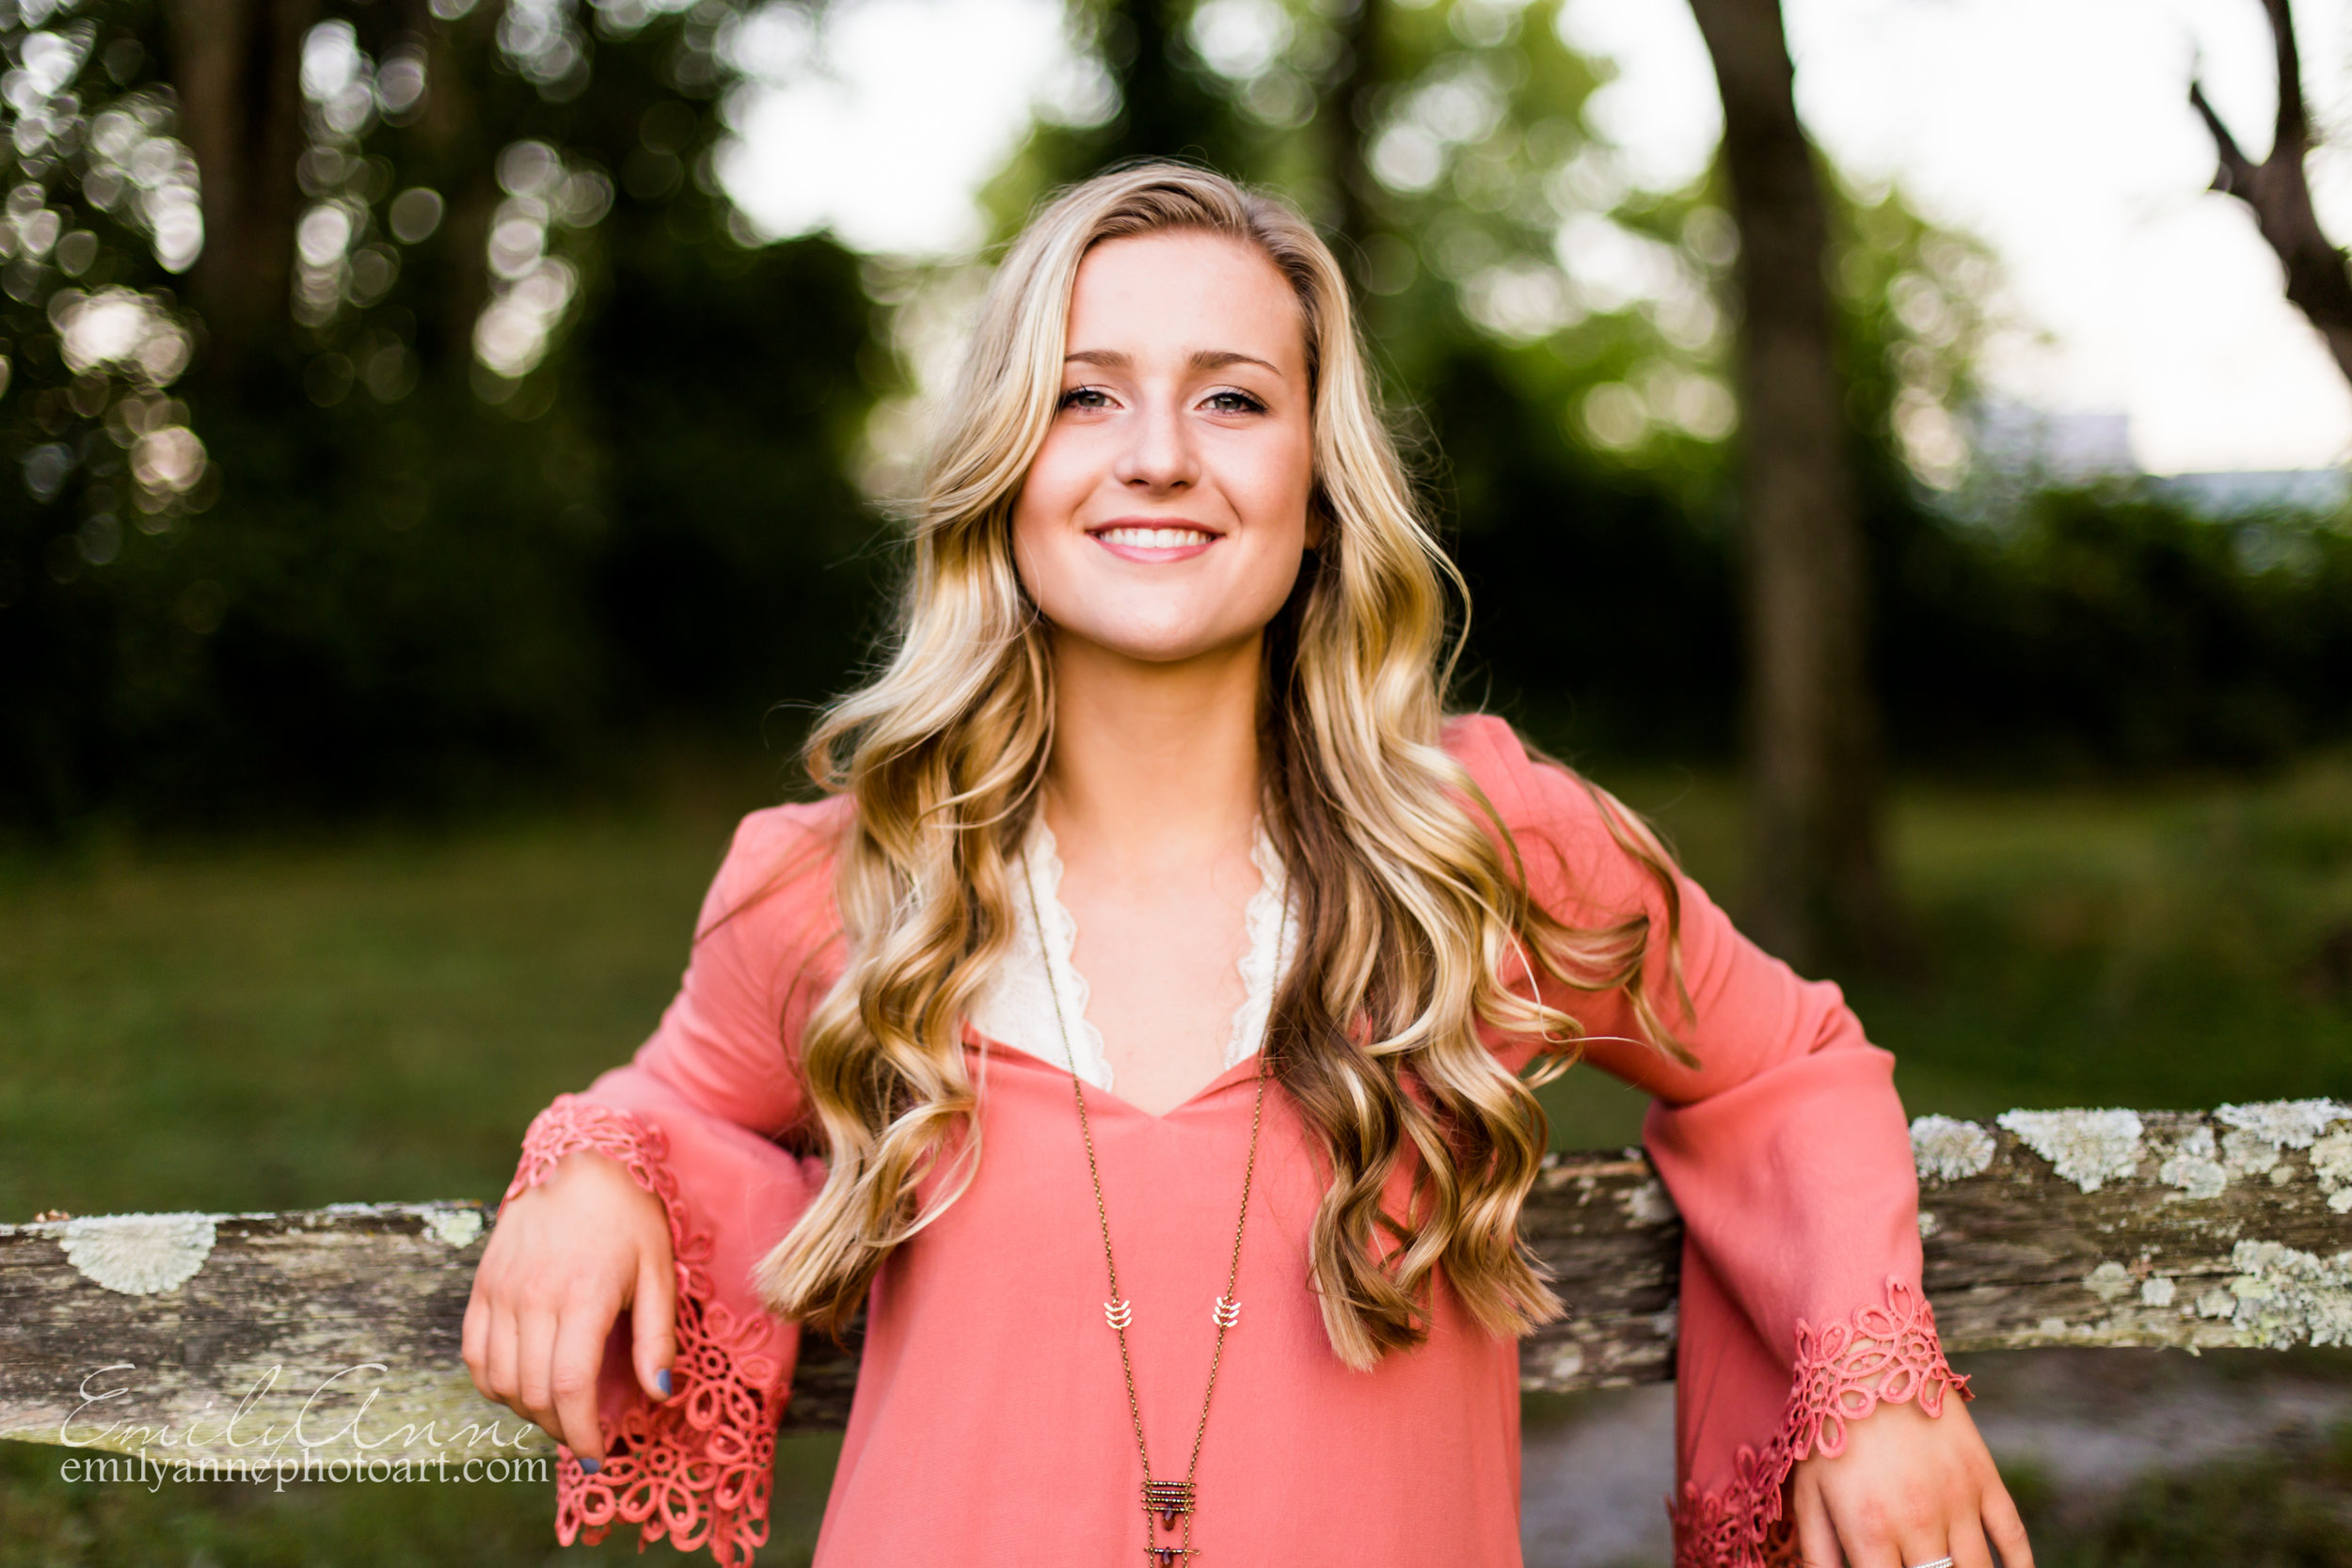 top senior portrait photographer in nashville tn brentwood and franklin tn; emily anne photography swiss model photographer